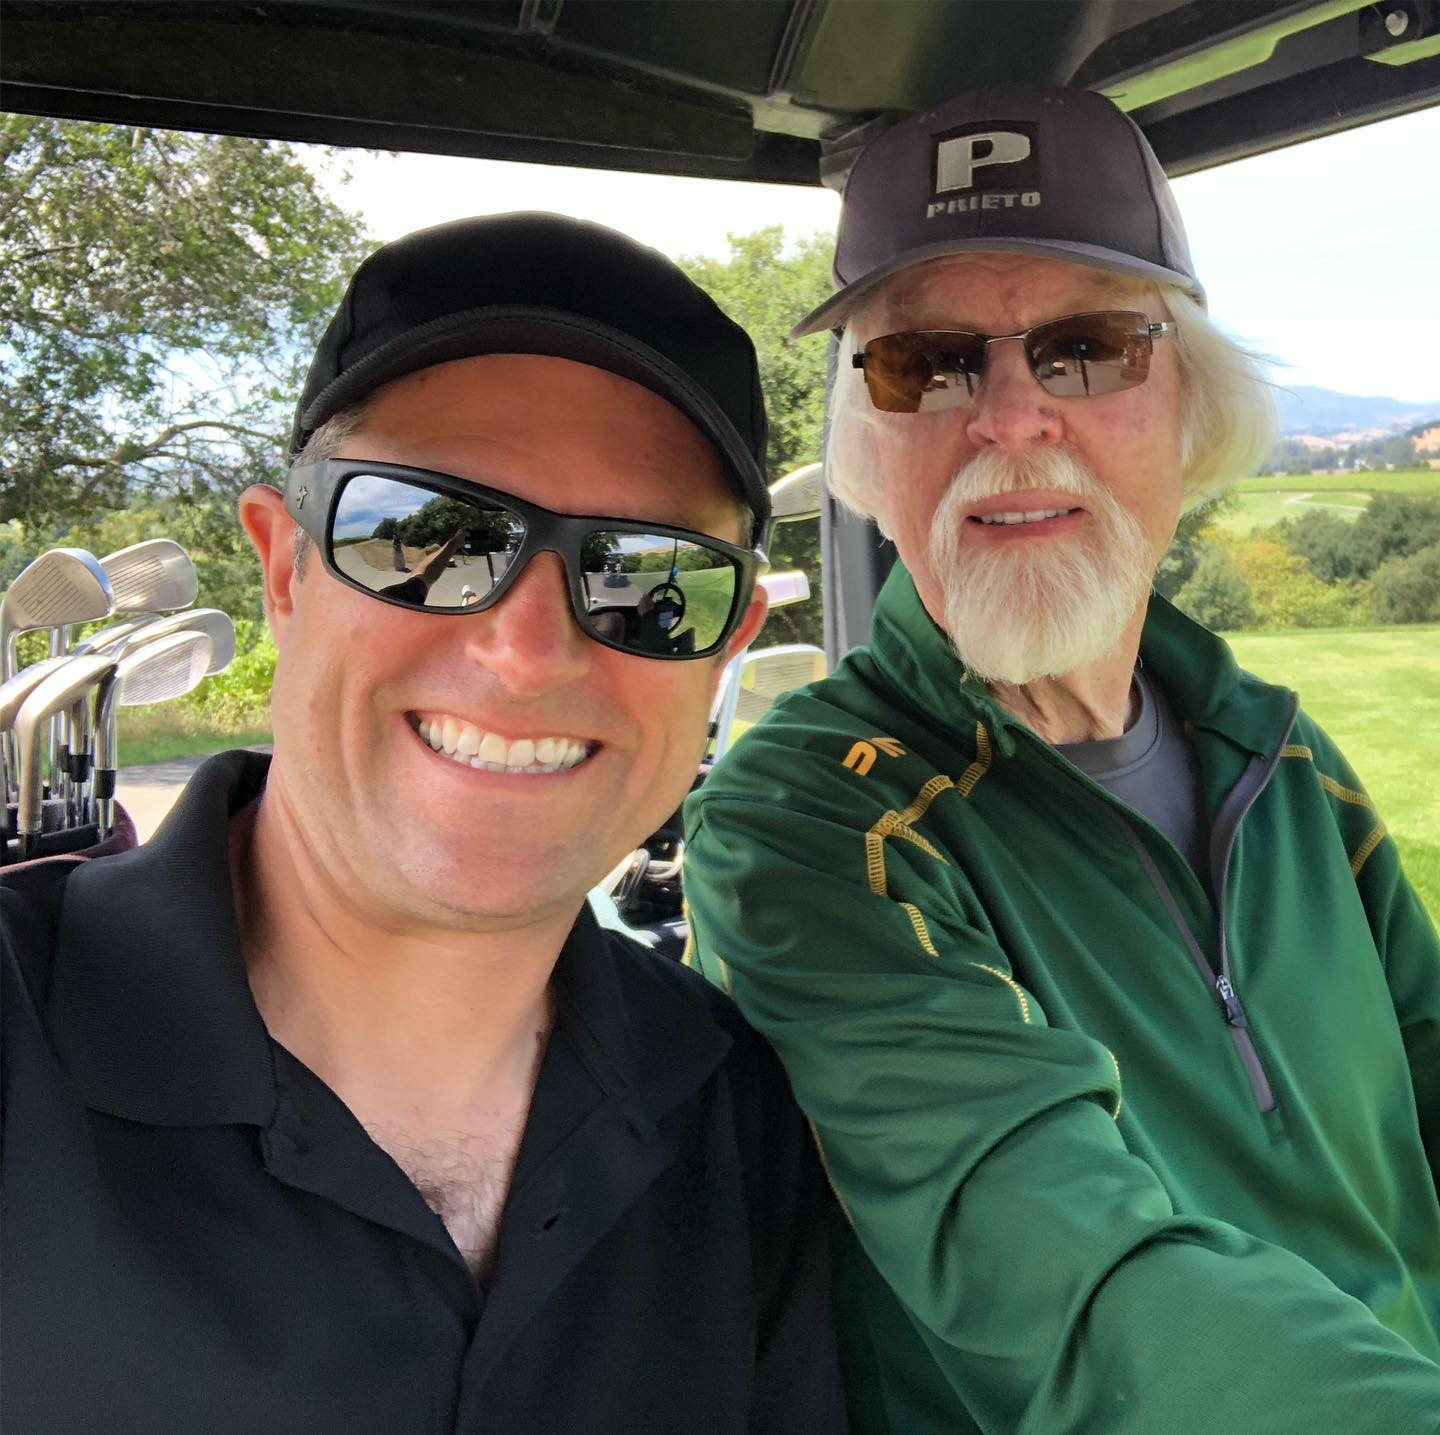 Birthday golf in Napa with uncle Jim, just fantastic :)